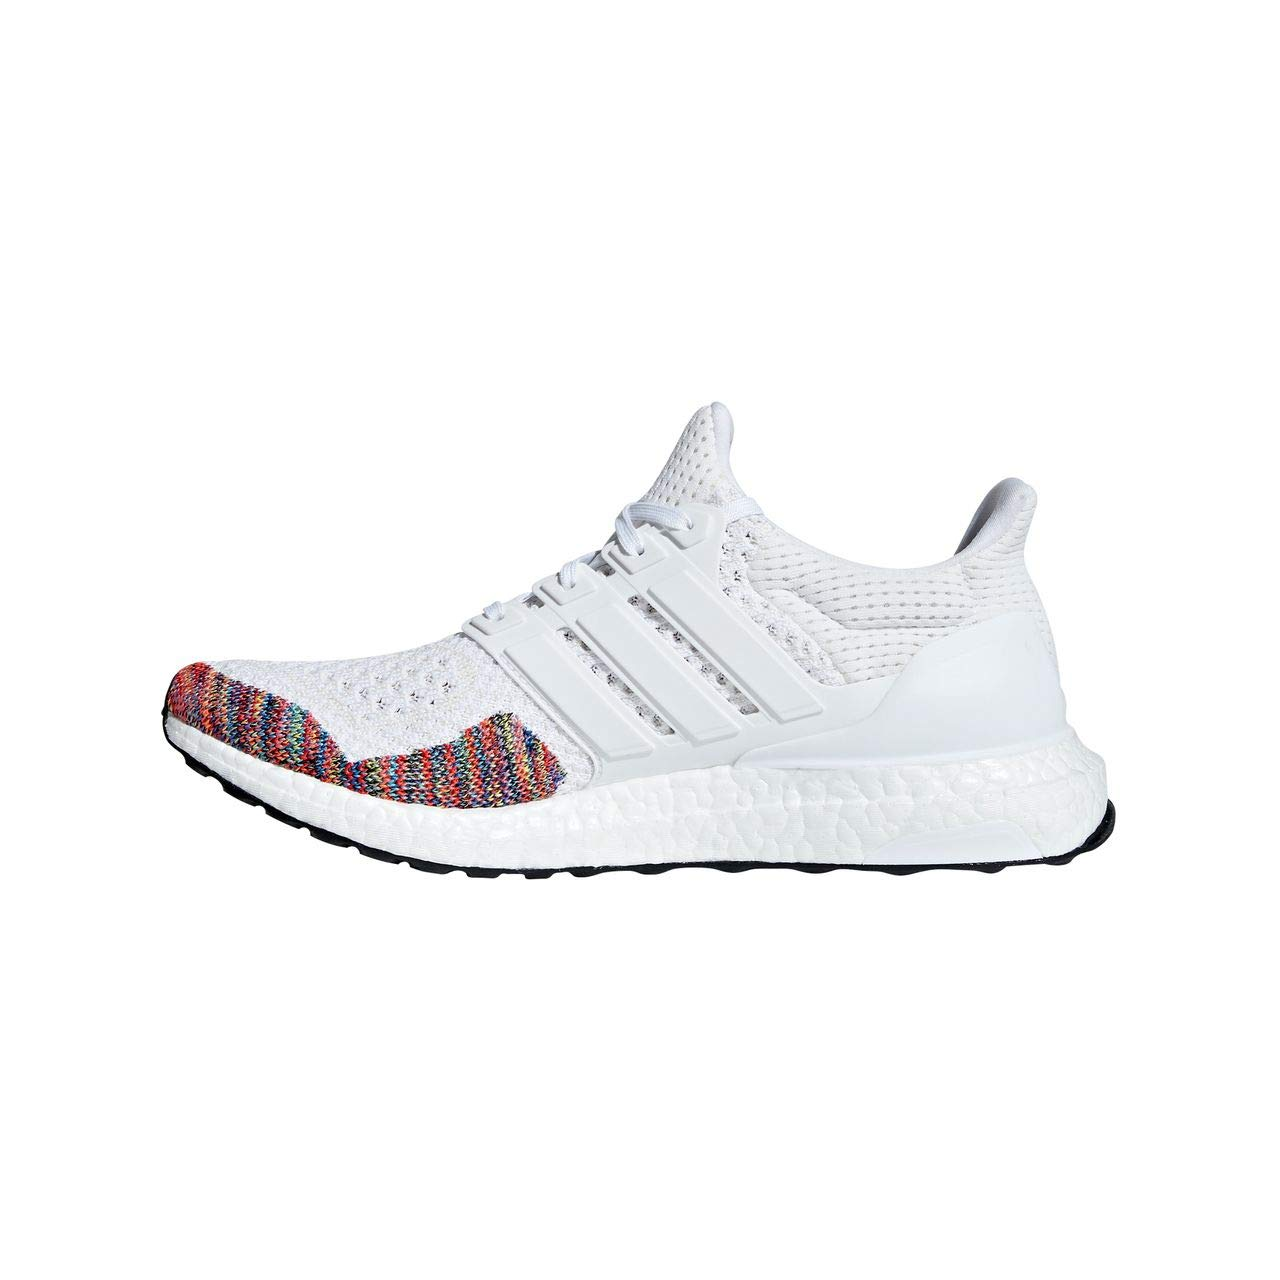 9133b25d4b adidas Ultra Boost LTD Mens Running Shoes - White-9